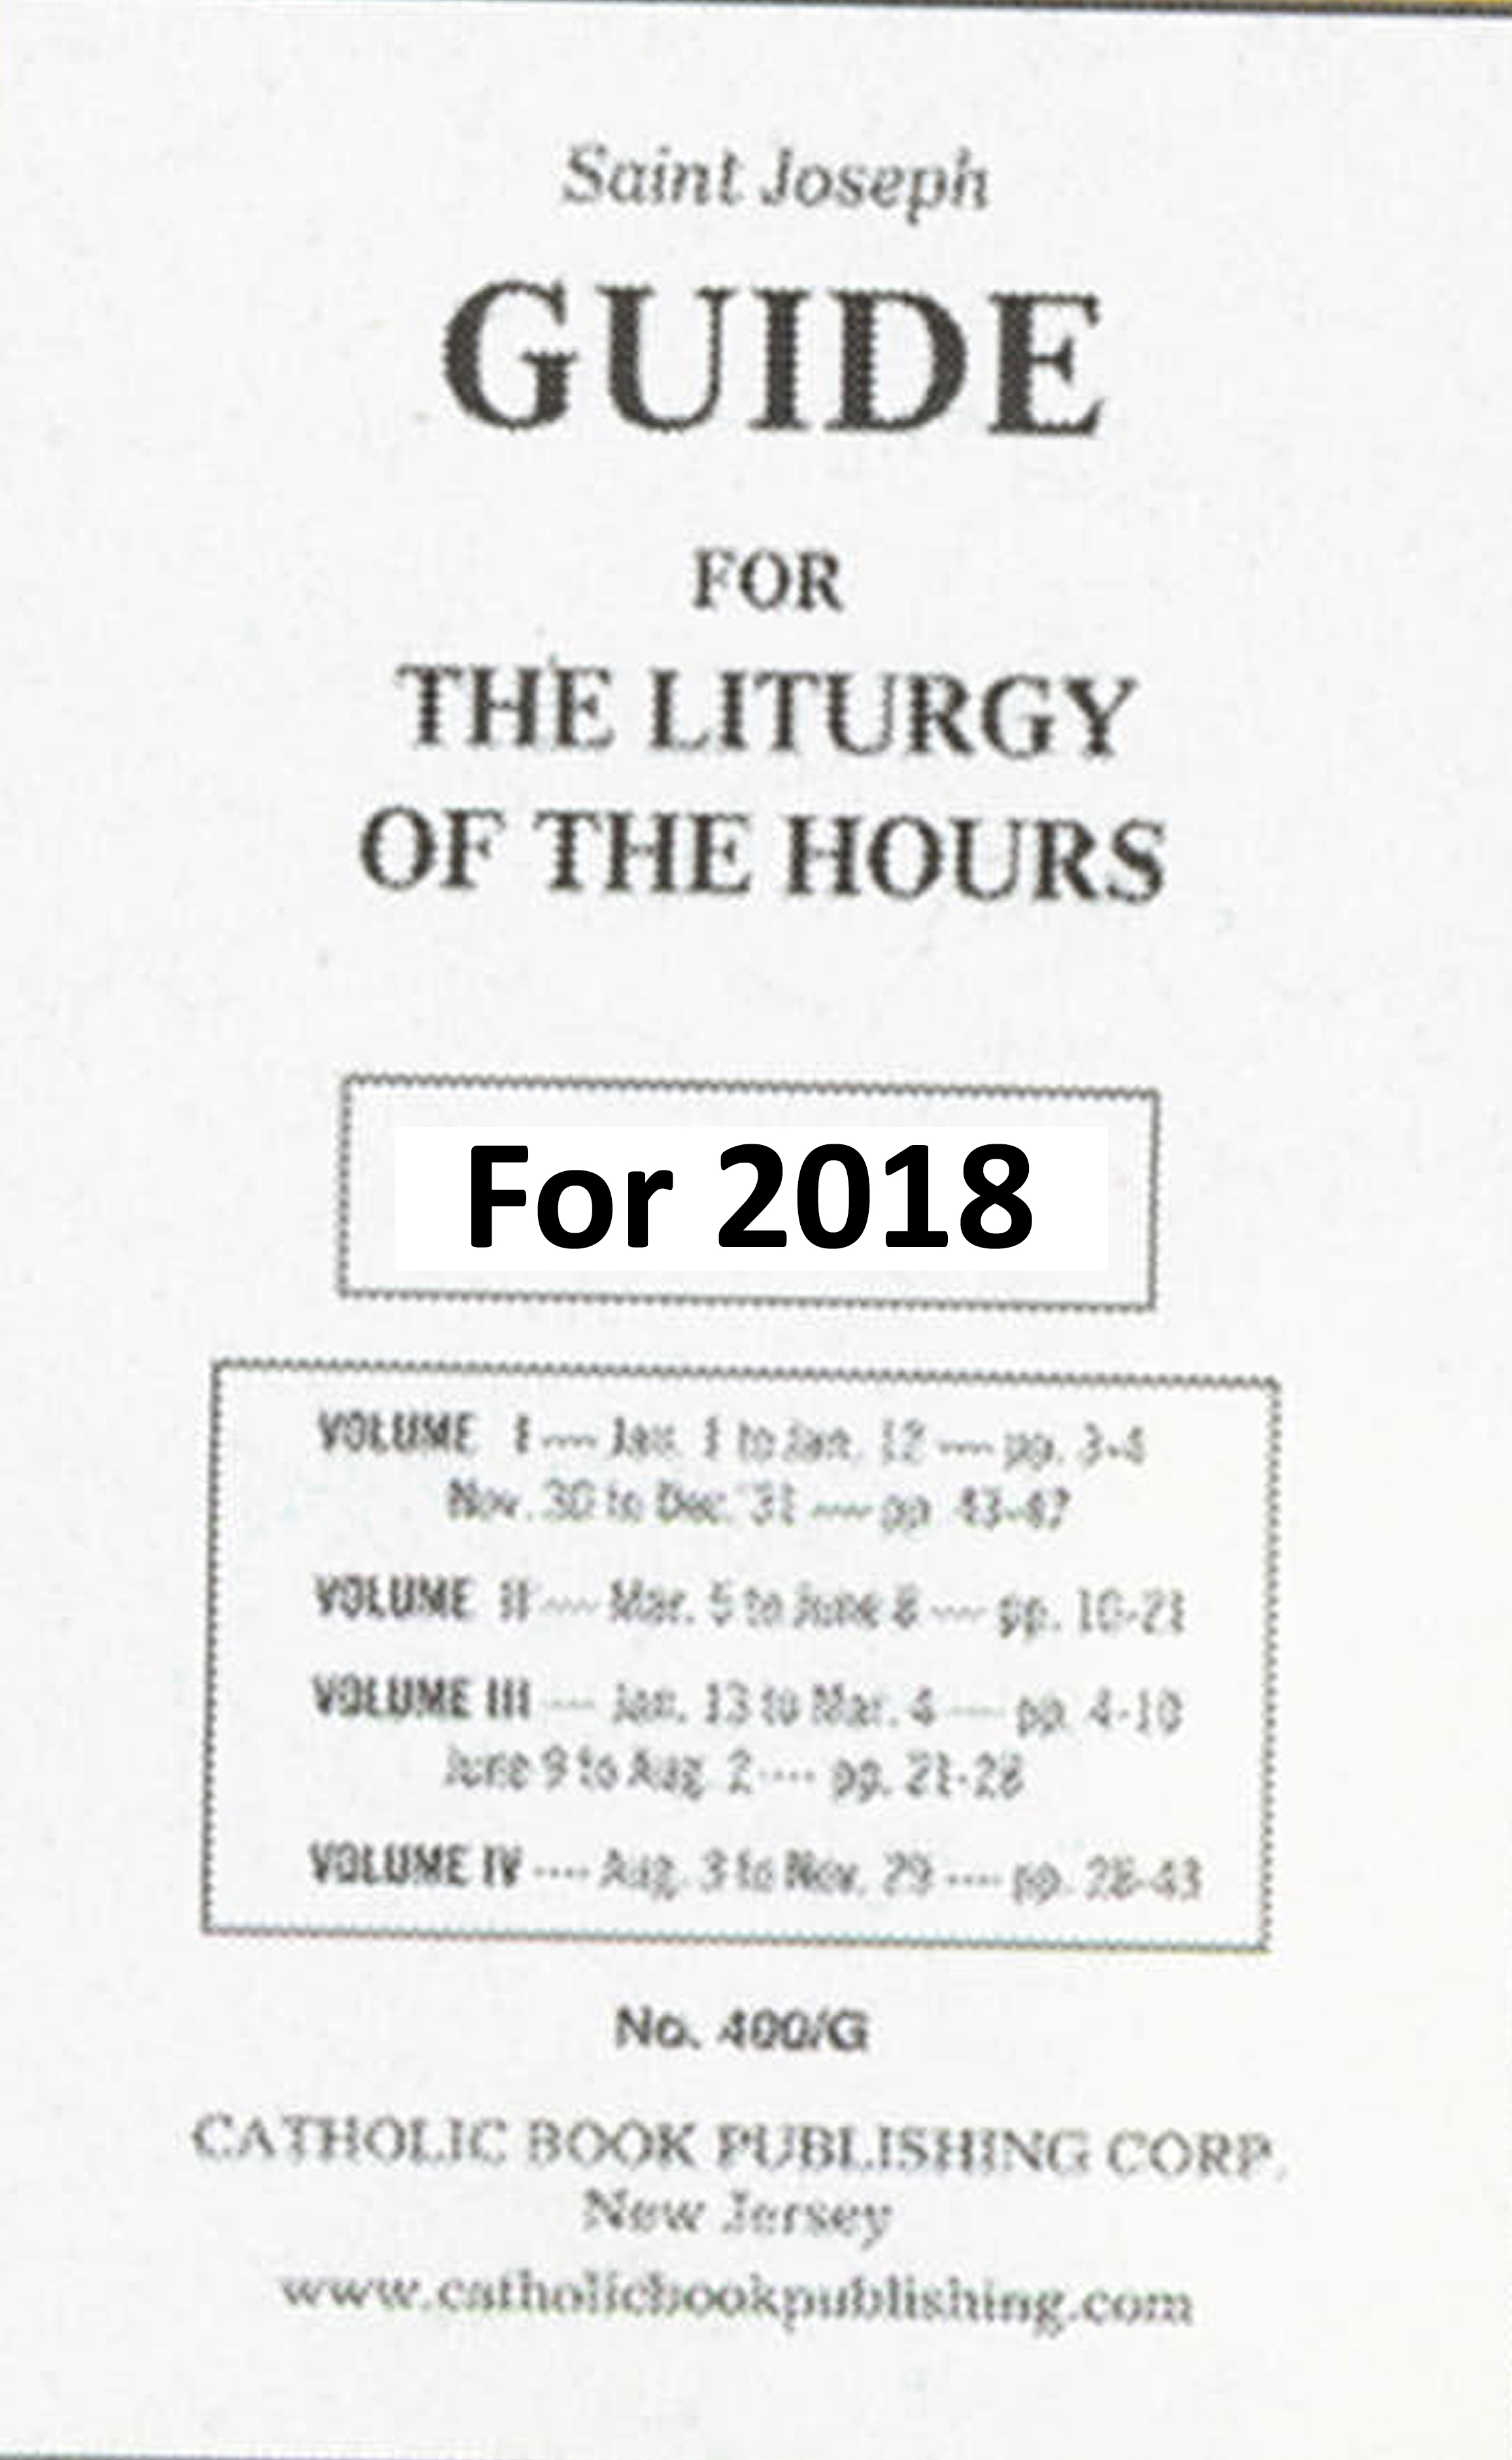 St. Joseph Guide for Liturgy of the Hours 2018